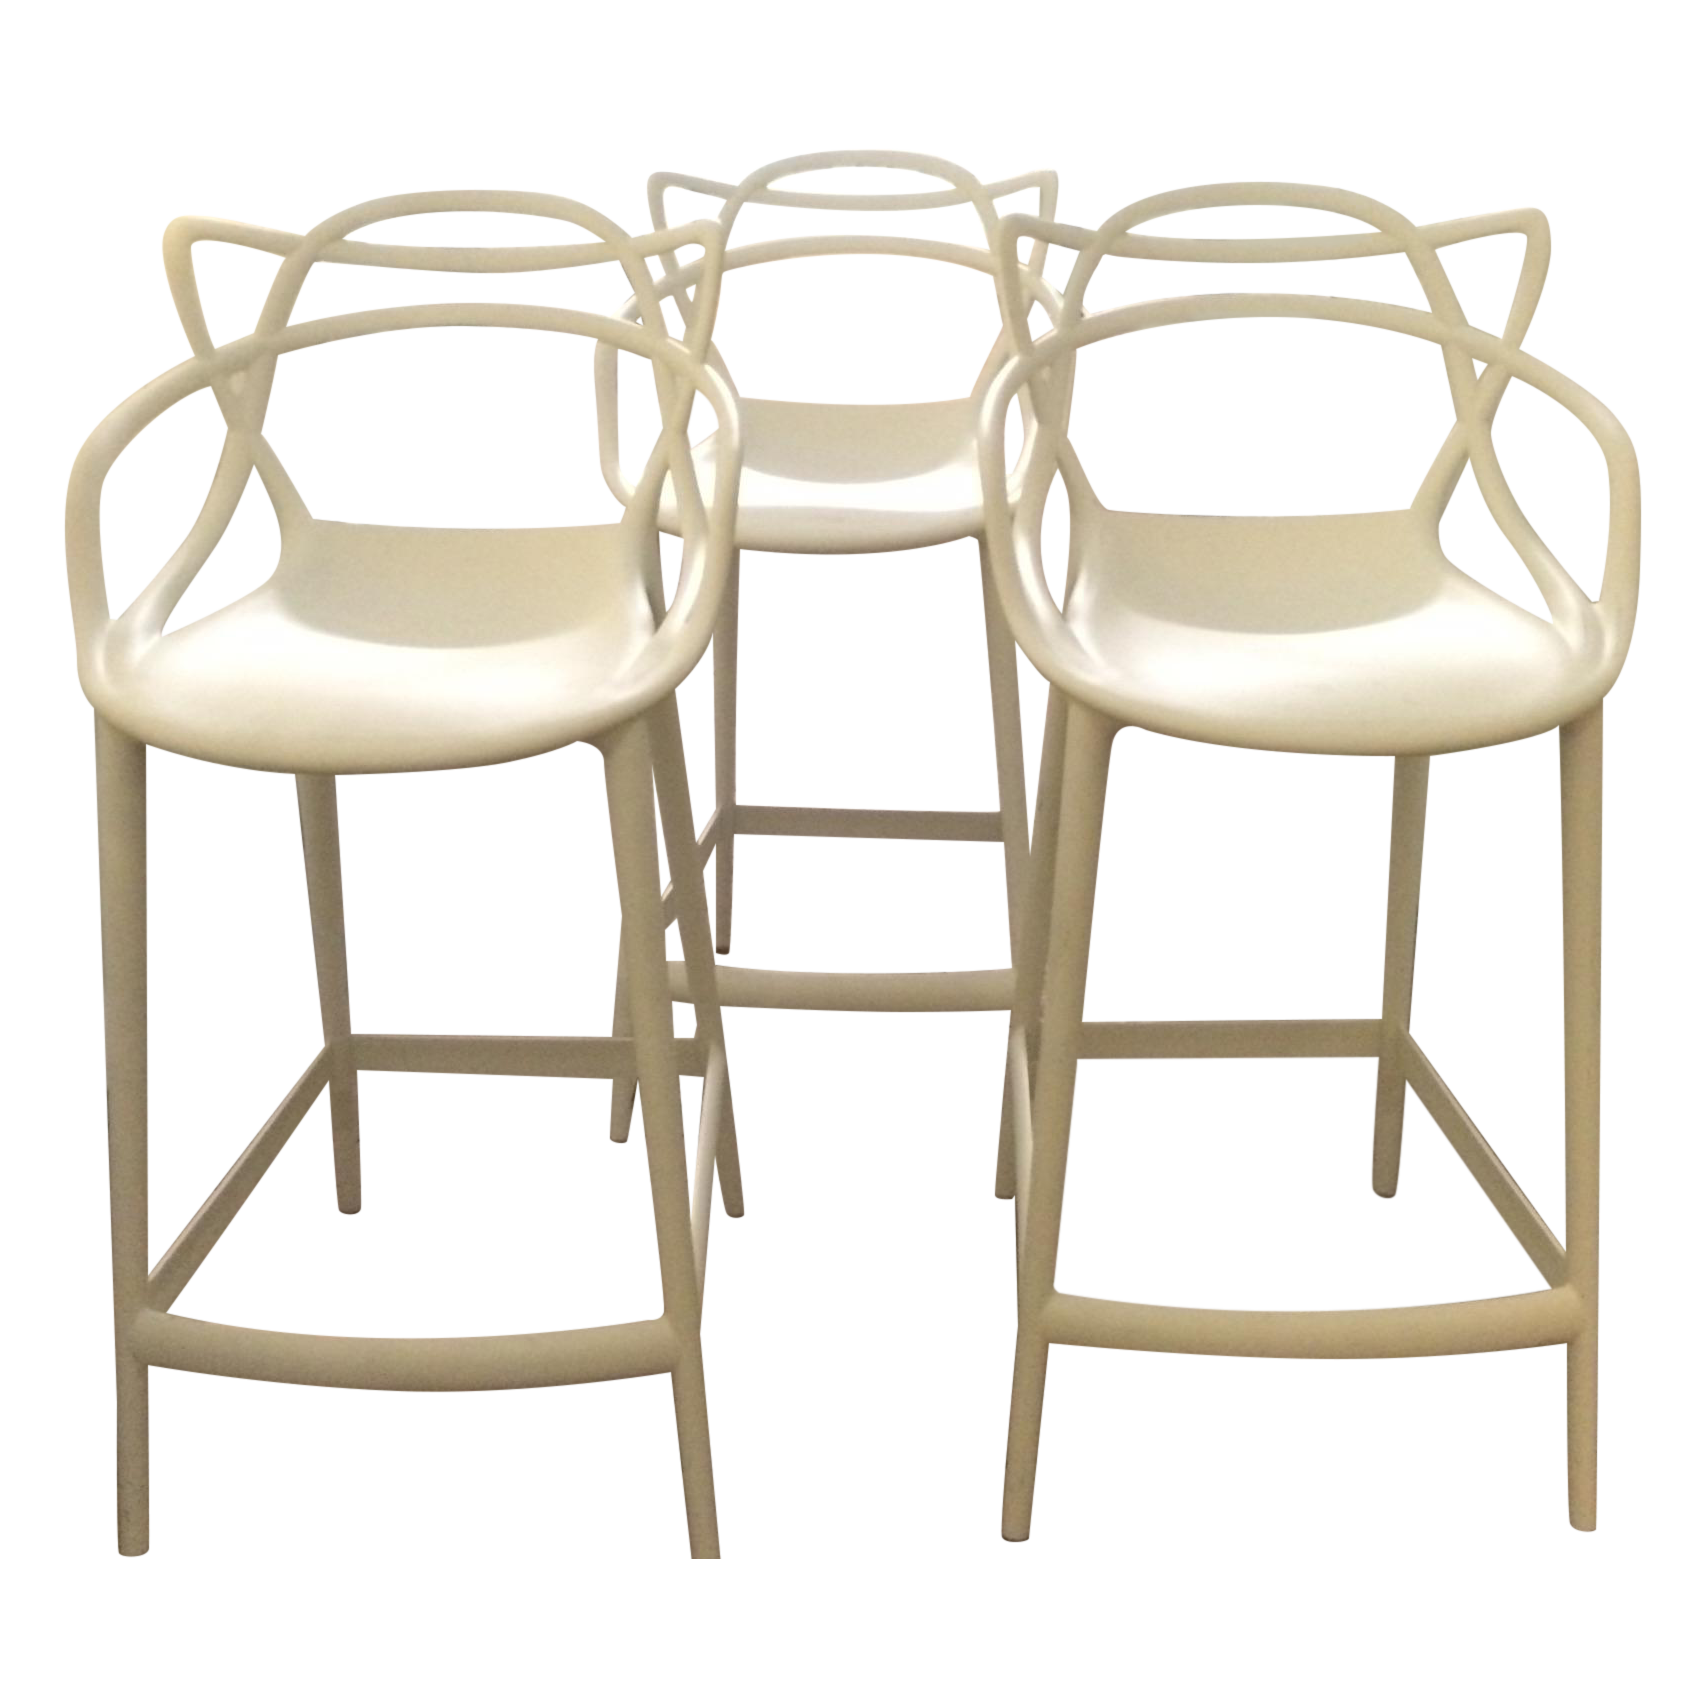 Kartell Masters White Bar Stools Set of 3 Chairish : d204e664 c778 411c 8ba9 400a8732477aaspectfitampwidth640ampheight640 from www.chairish.com size 640 x 640 jpeg 36kB